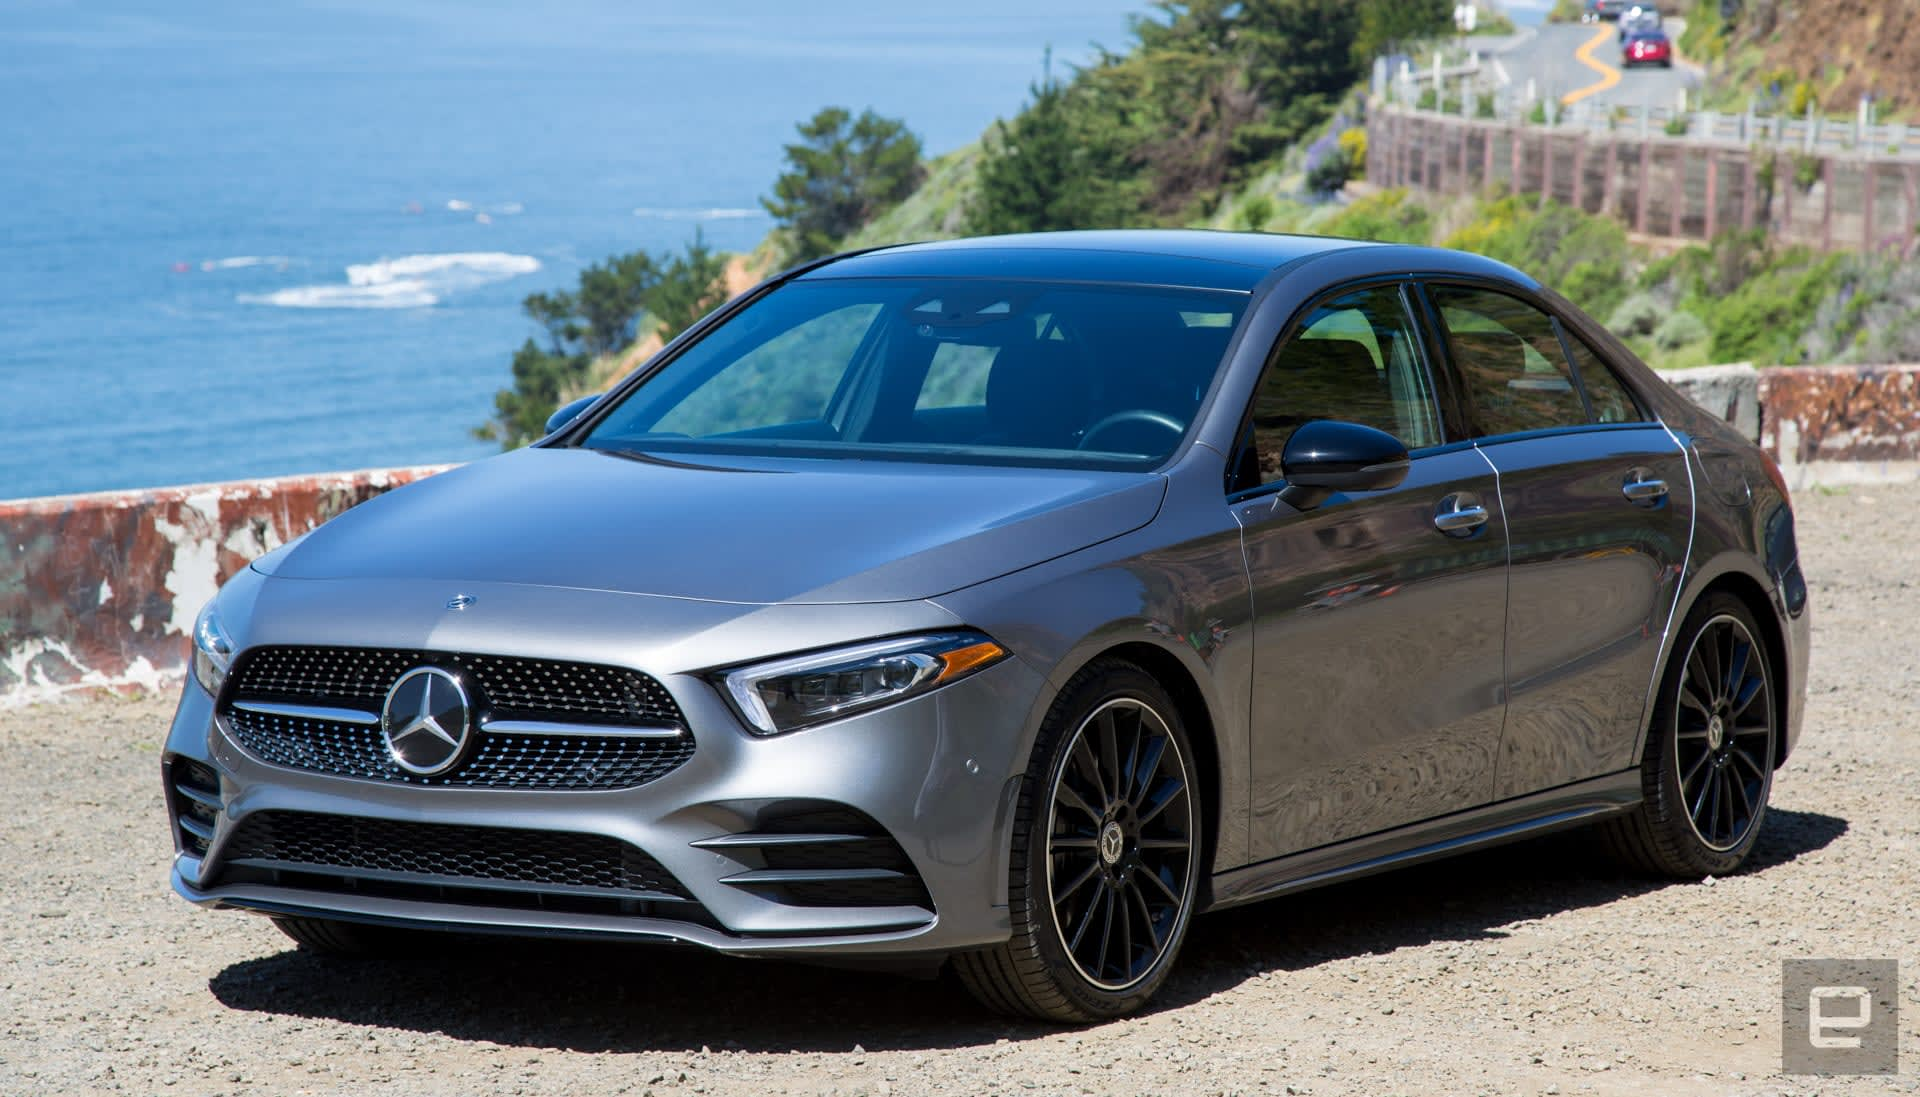 Mercedes Benz A Class >> The Mercedes A220 Raises The Bar For Inexpensive Luxury